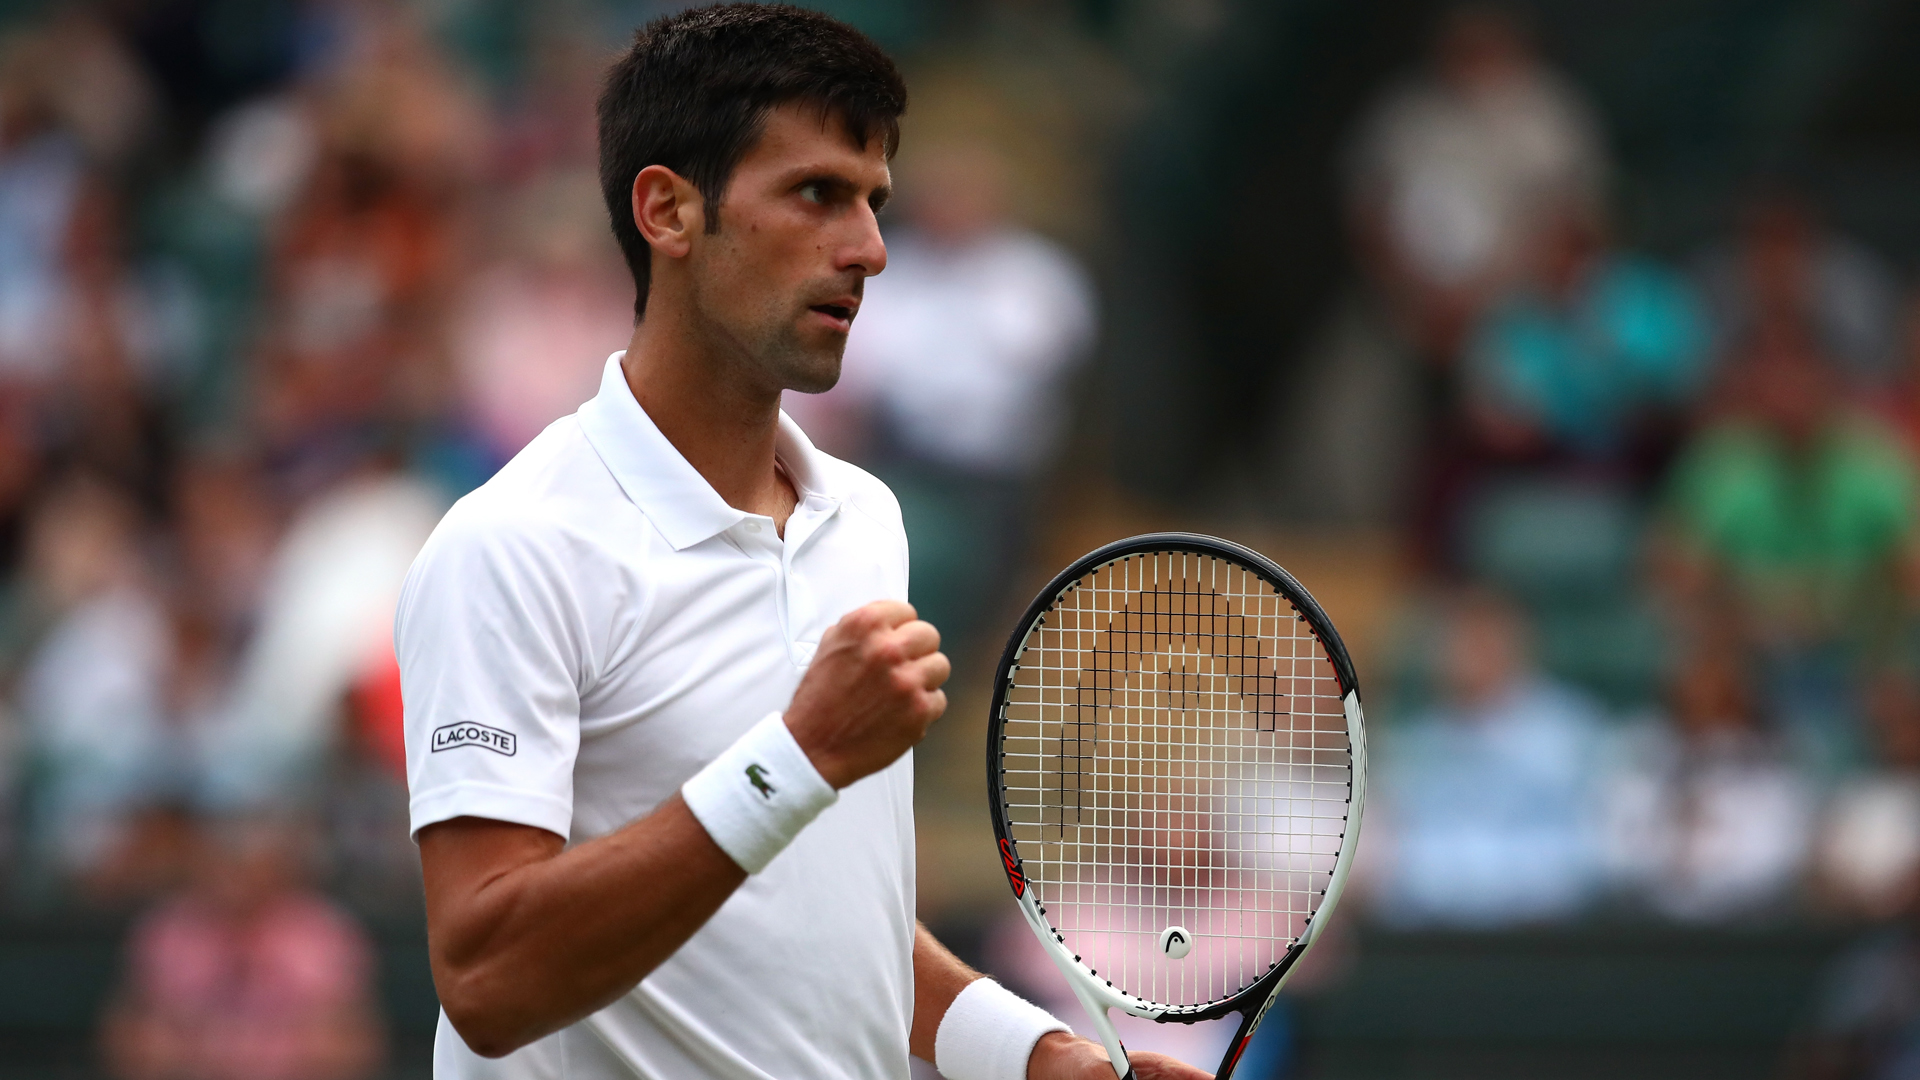 Wimbledon  Novak Djokovic Upbeat After Cruising Into Quarter Finals Tennis Sporting News